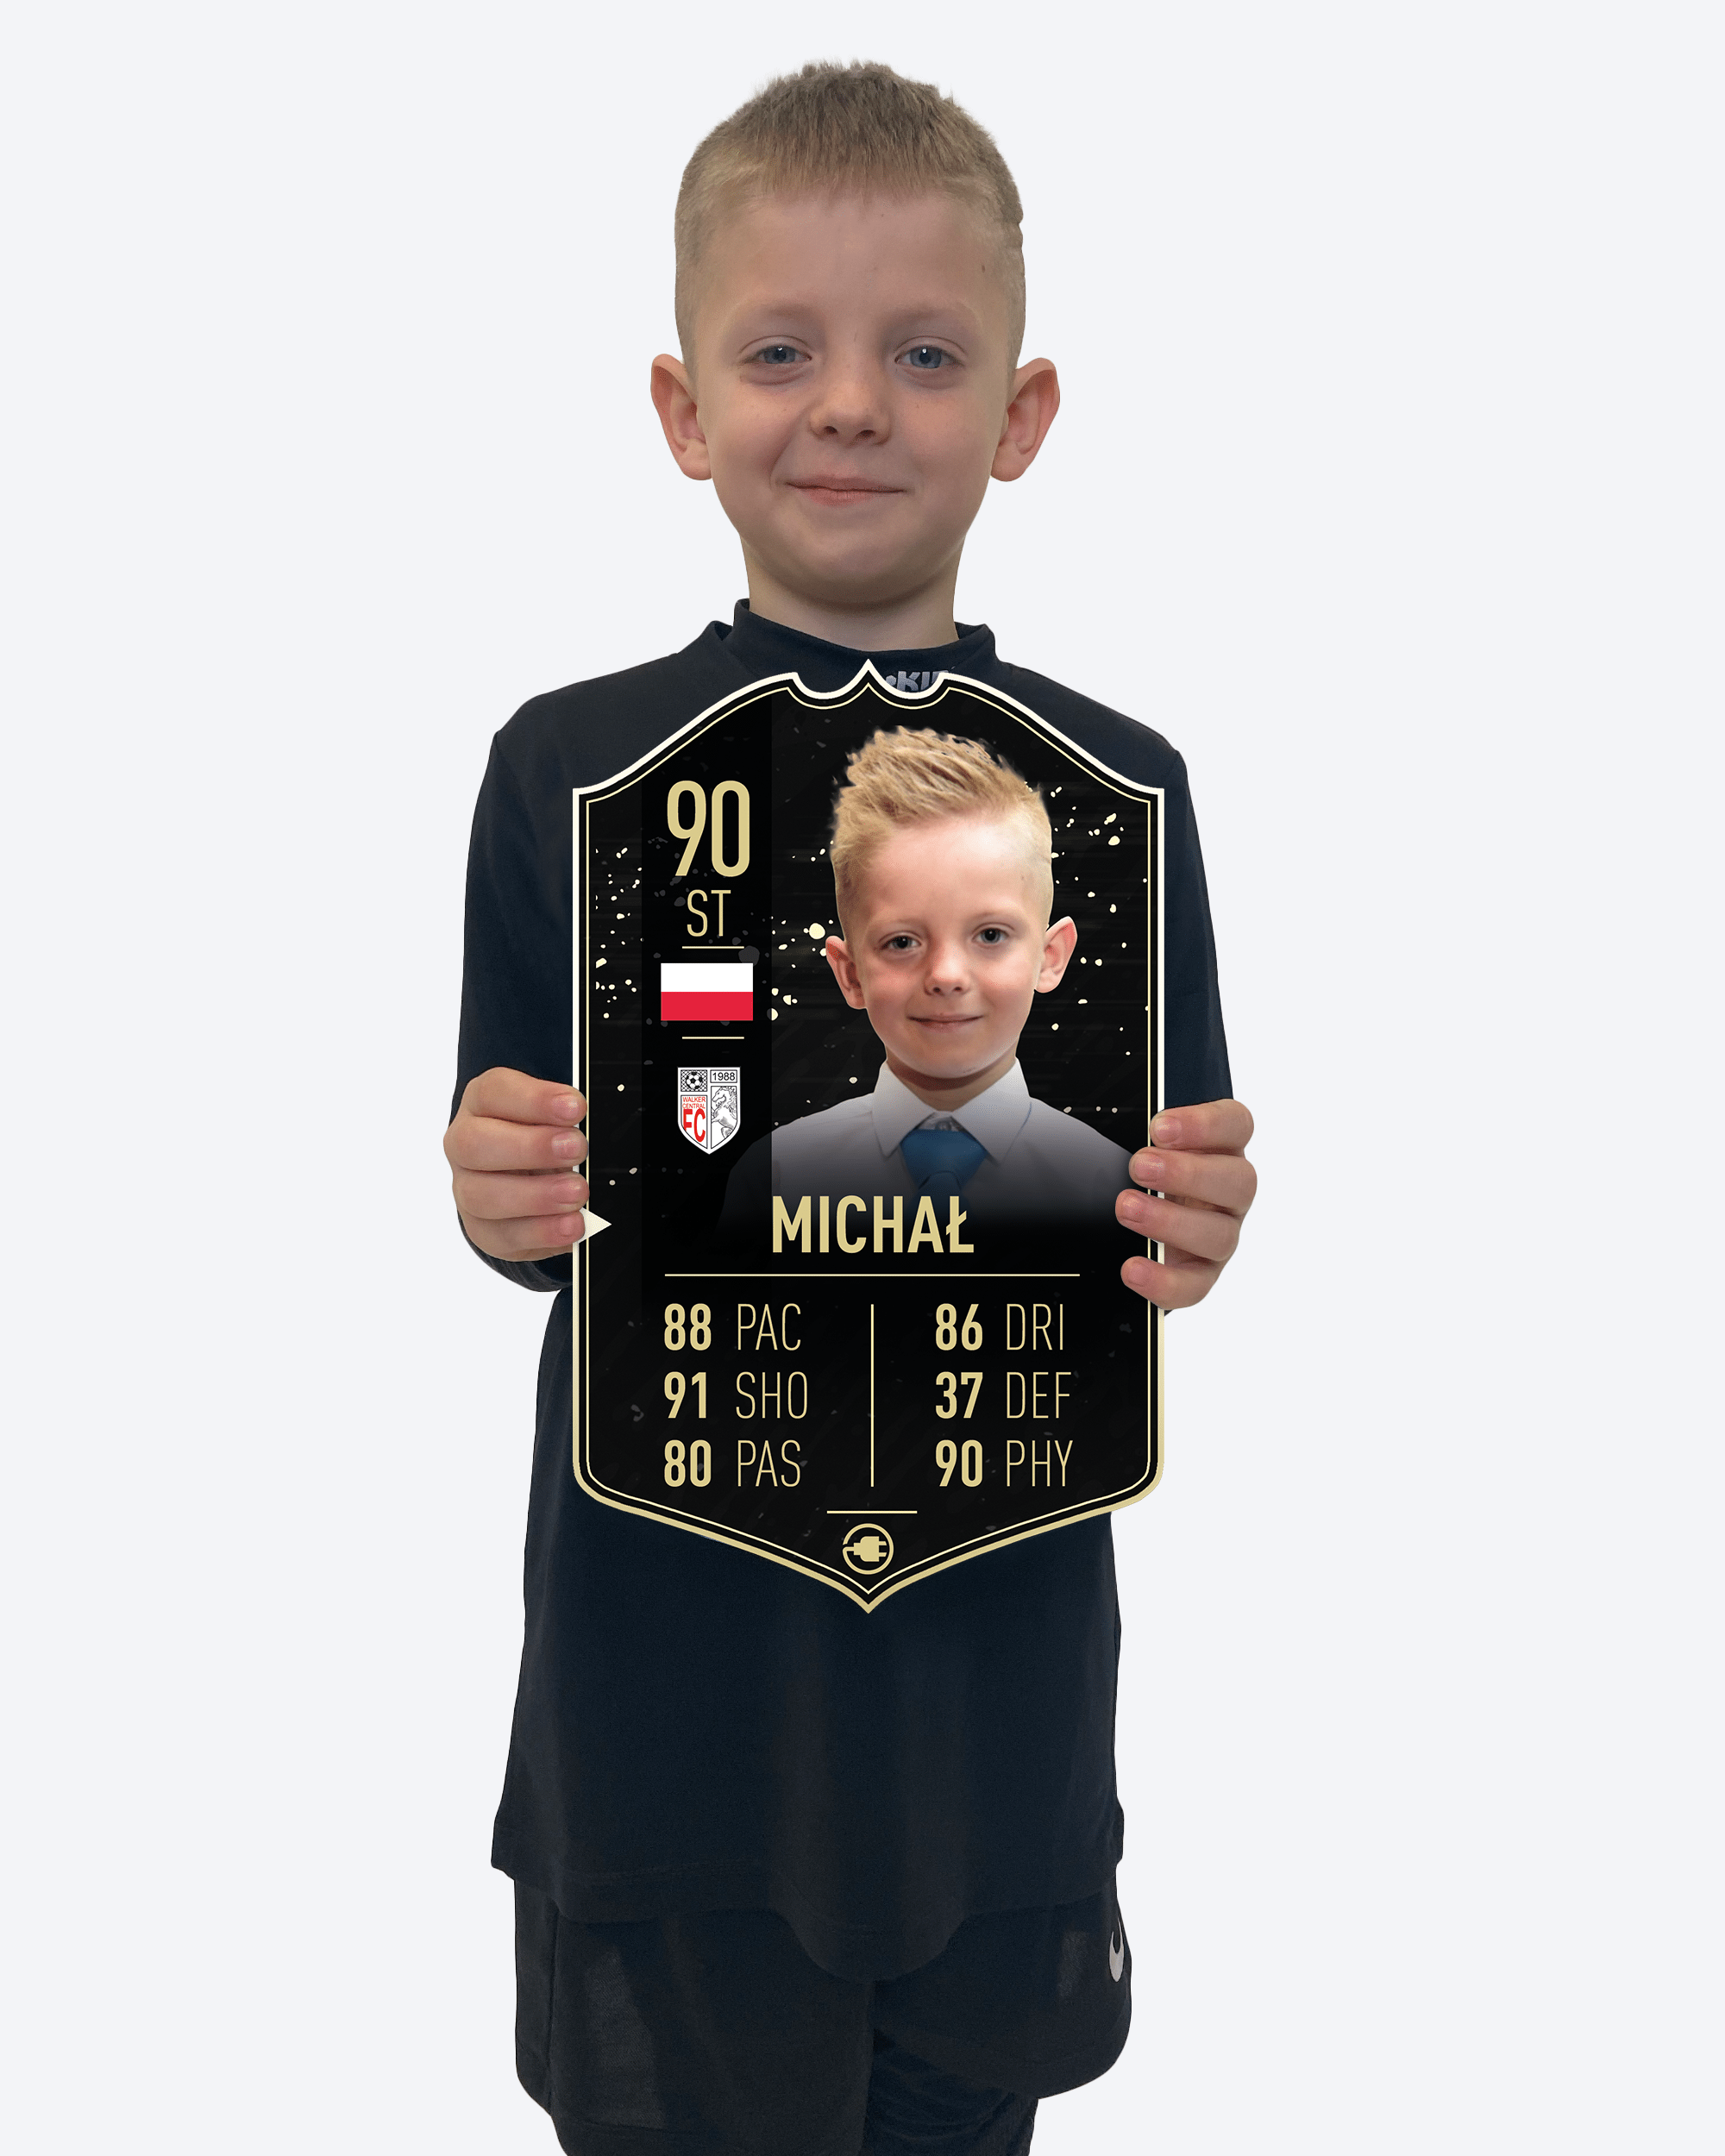 S20 Gold Inform - CardsPlug | Real life football card